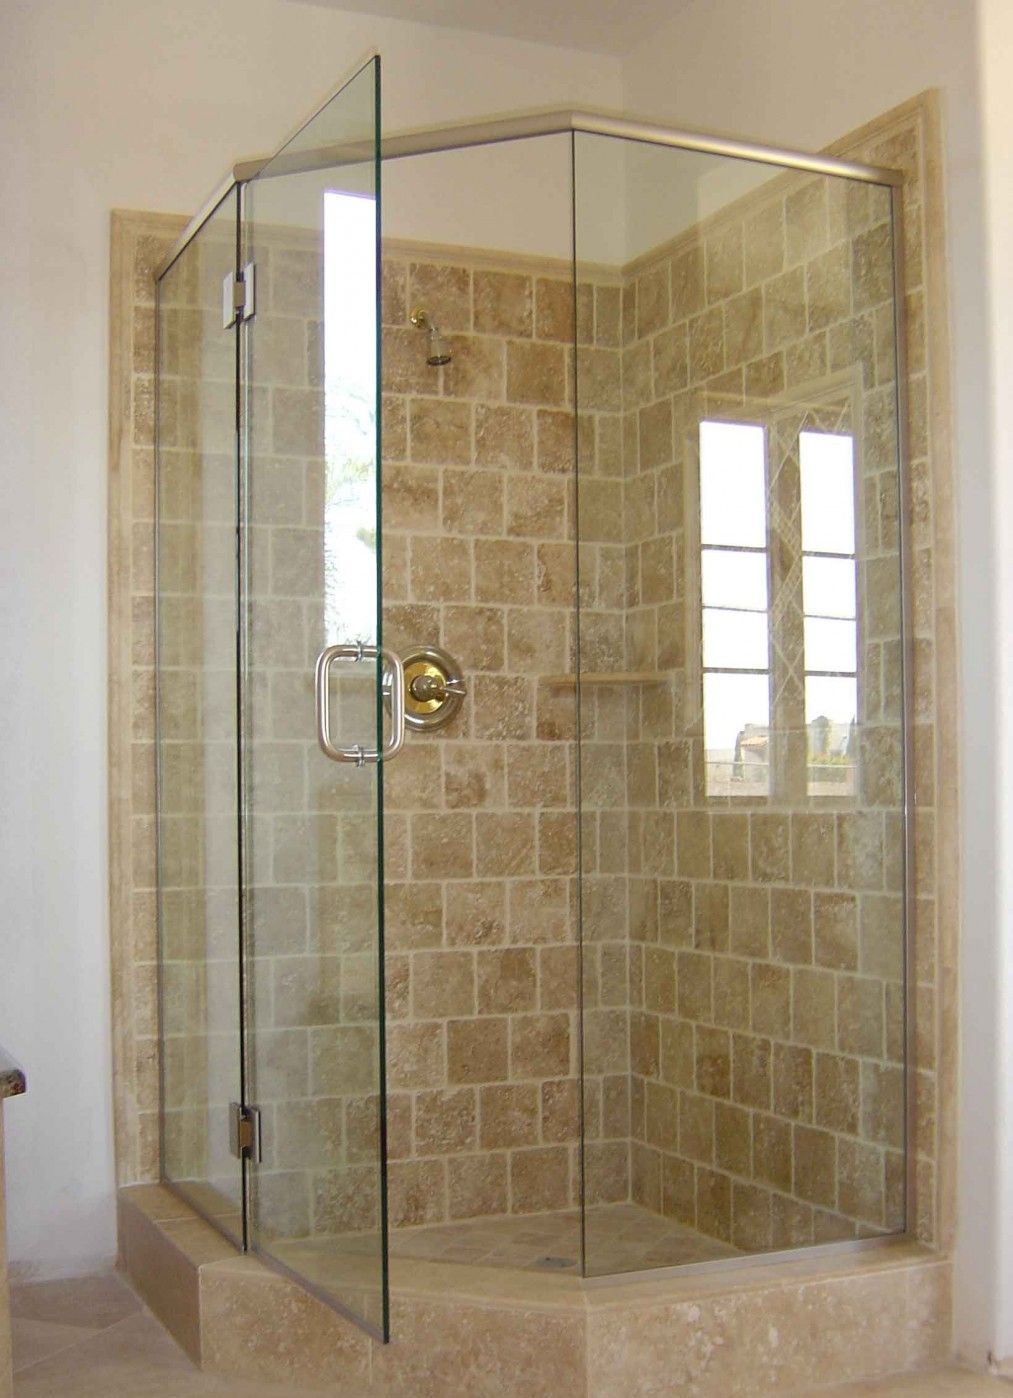 Awesome Bathroom Design With Cool Tiled Corner Showers : SHOWER DOOR ...